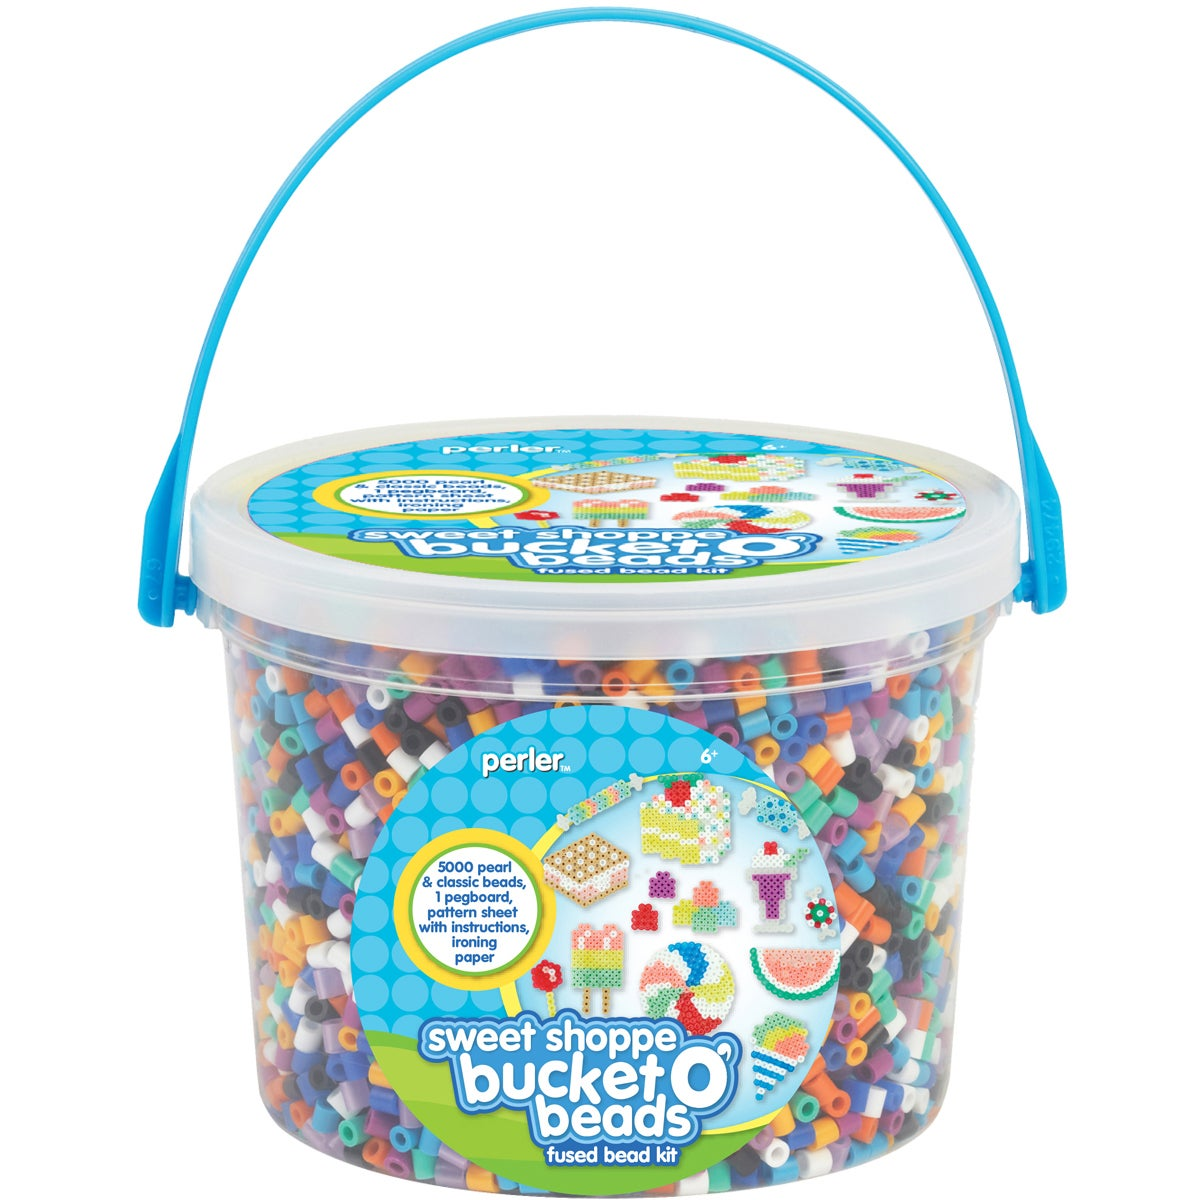 Perler Fun Fusion Fuse Bead Activity Bucket-Sweet Shoppe at Sears.com